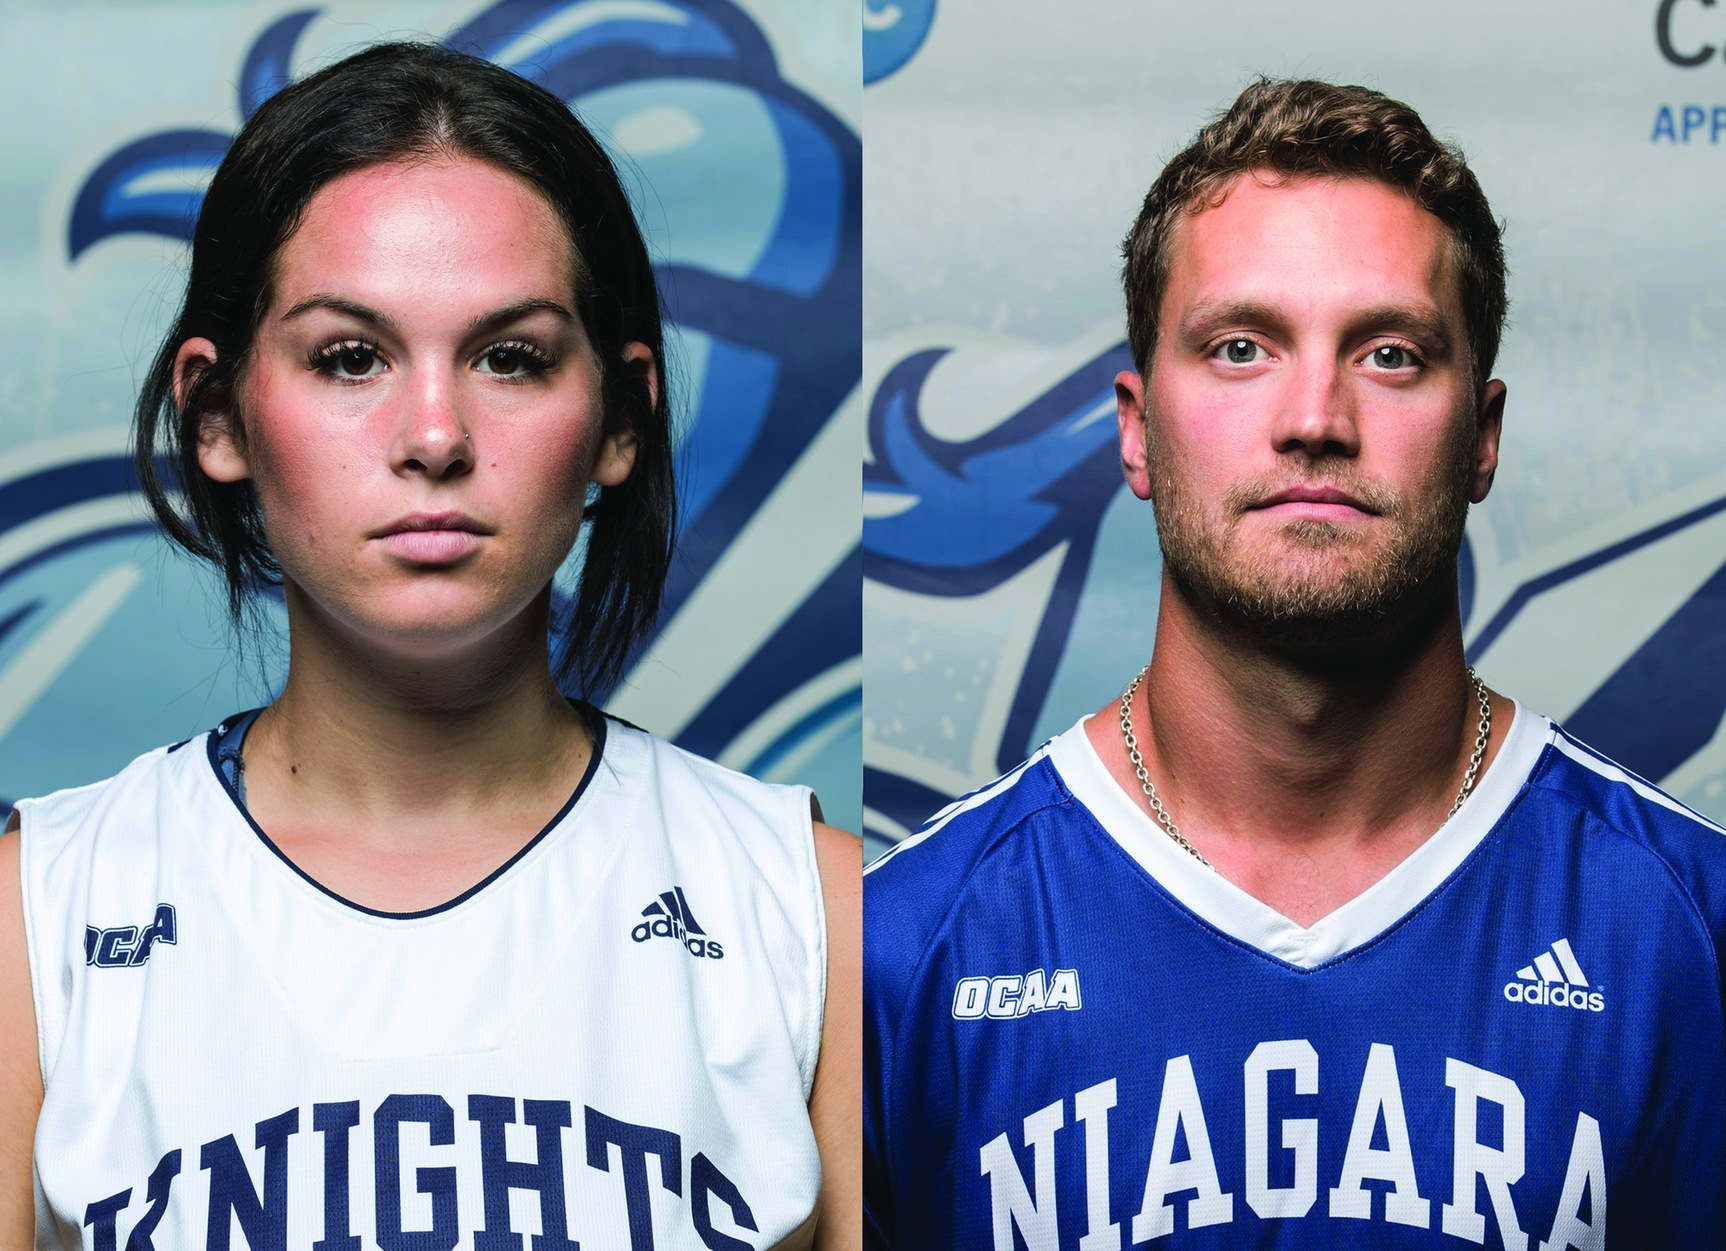 NEWS: Ingribelli and Sawatsky named Athletes of the Week